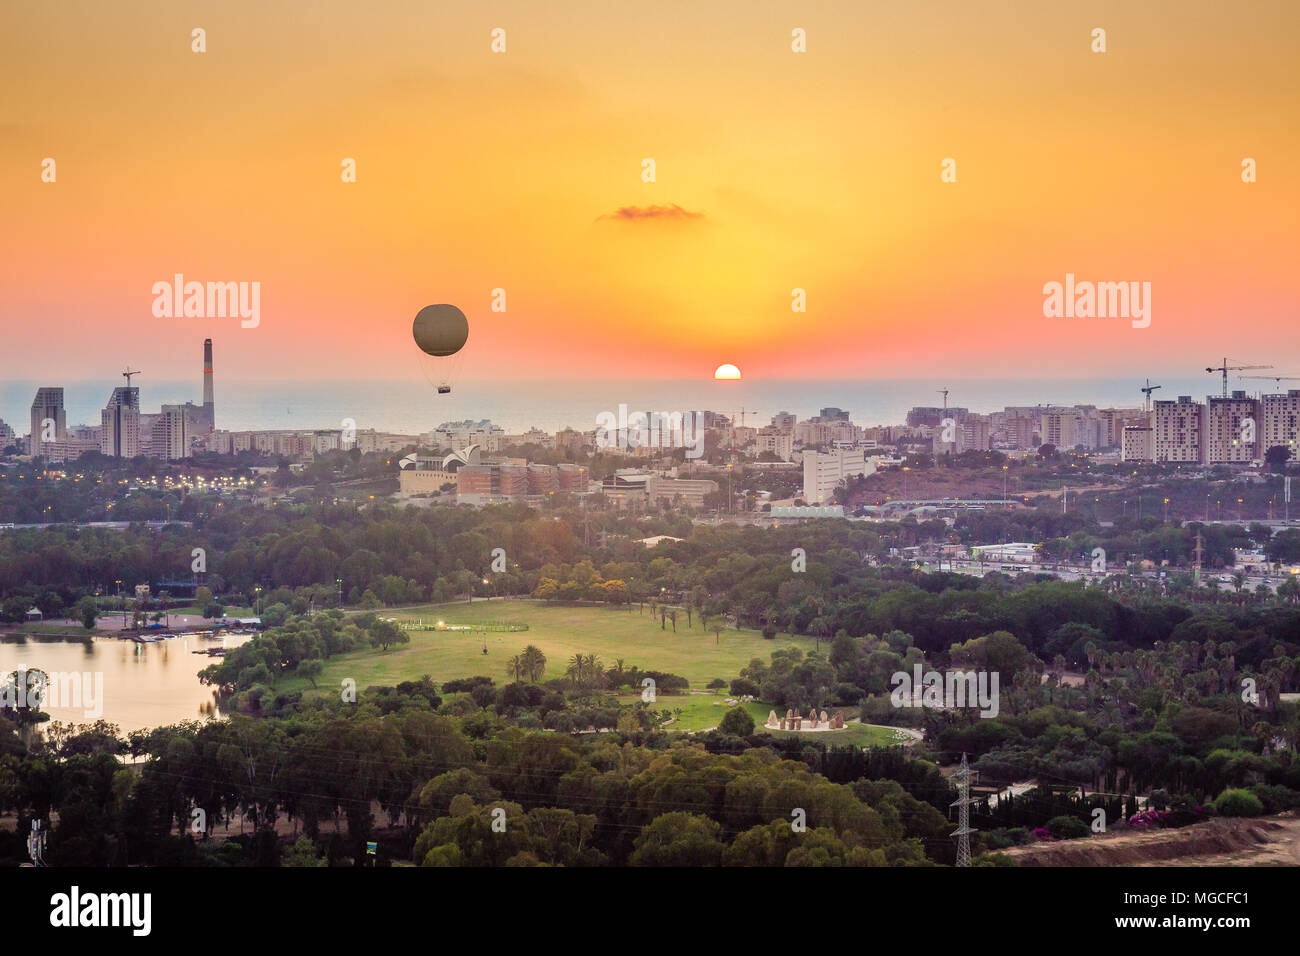 Tel Aviv skyline at sunset. Can see a hot air balloon flying in the air. In addition, can see the neighborhood in north Tel Aviv, Hayarkon Park, Readi - Stock Image